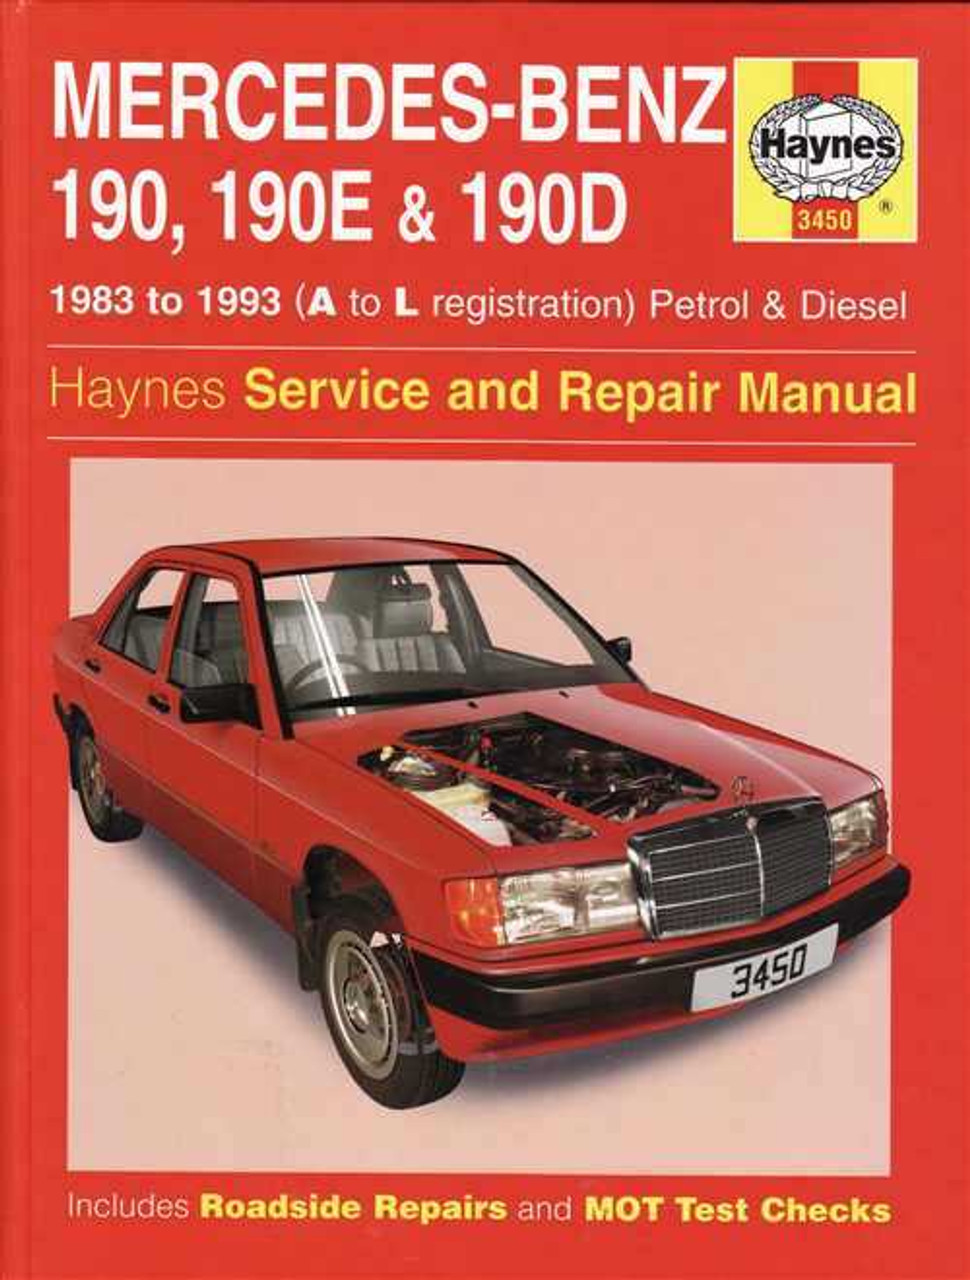 small resolution of mercedes 450sel 6 9 in addition 1993 mercedes 190e engine diagram mercedes 190e 2 6 engine diagram